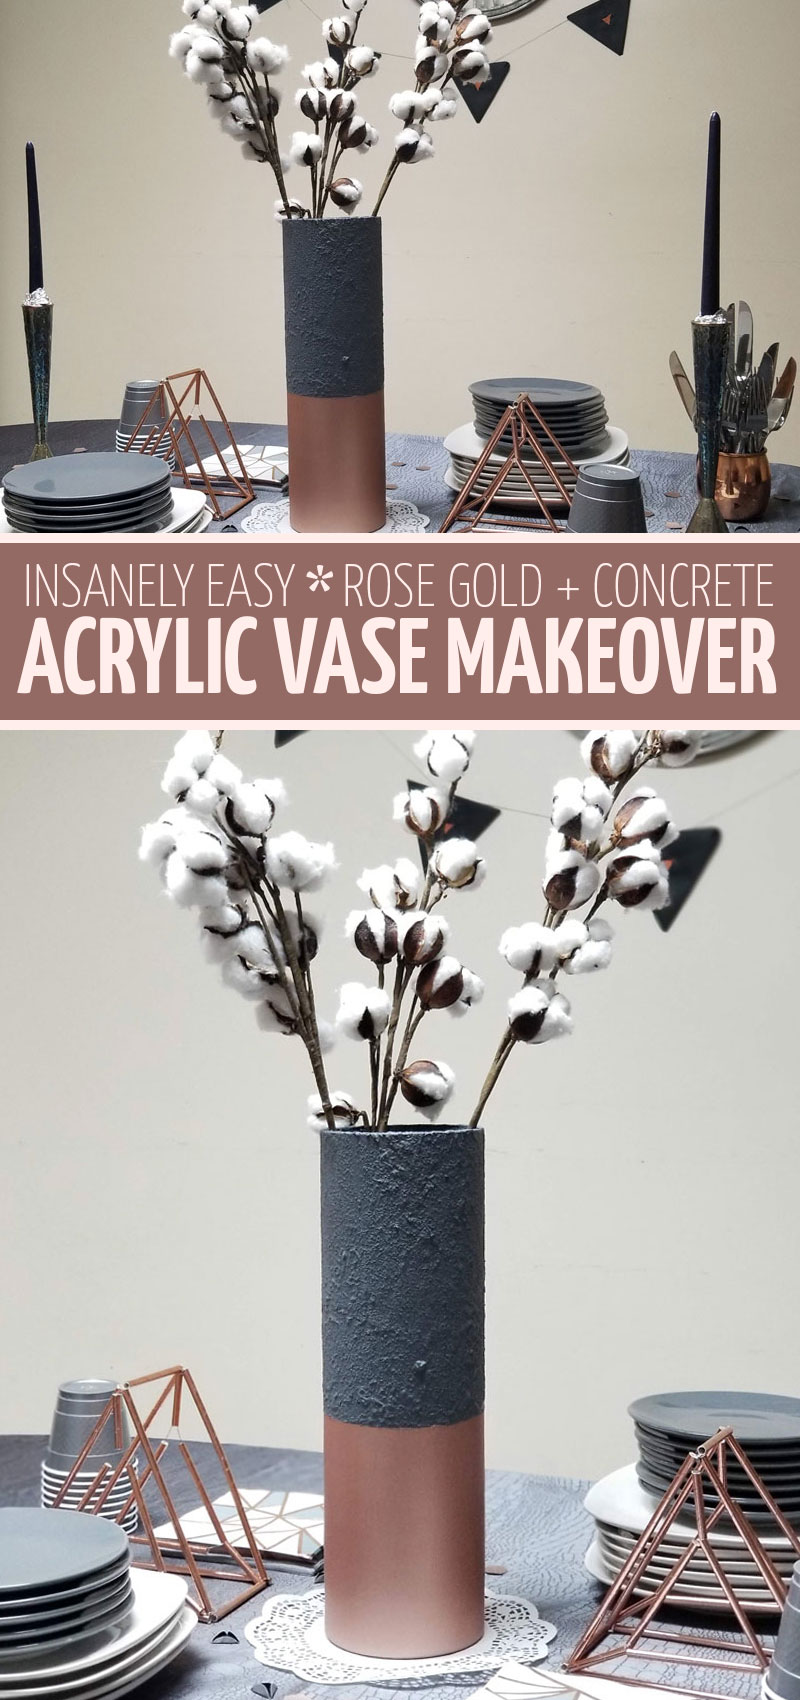 Click to learn how to do this painted vase makeover - turn an acrylic vase into a gorgeous textured concree and rose gold centerpiece! This beautiful charcoal and copper tablescape is perfect for Thanksgiving and Purim and everything in between.